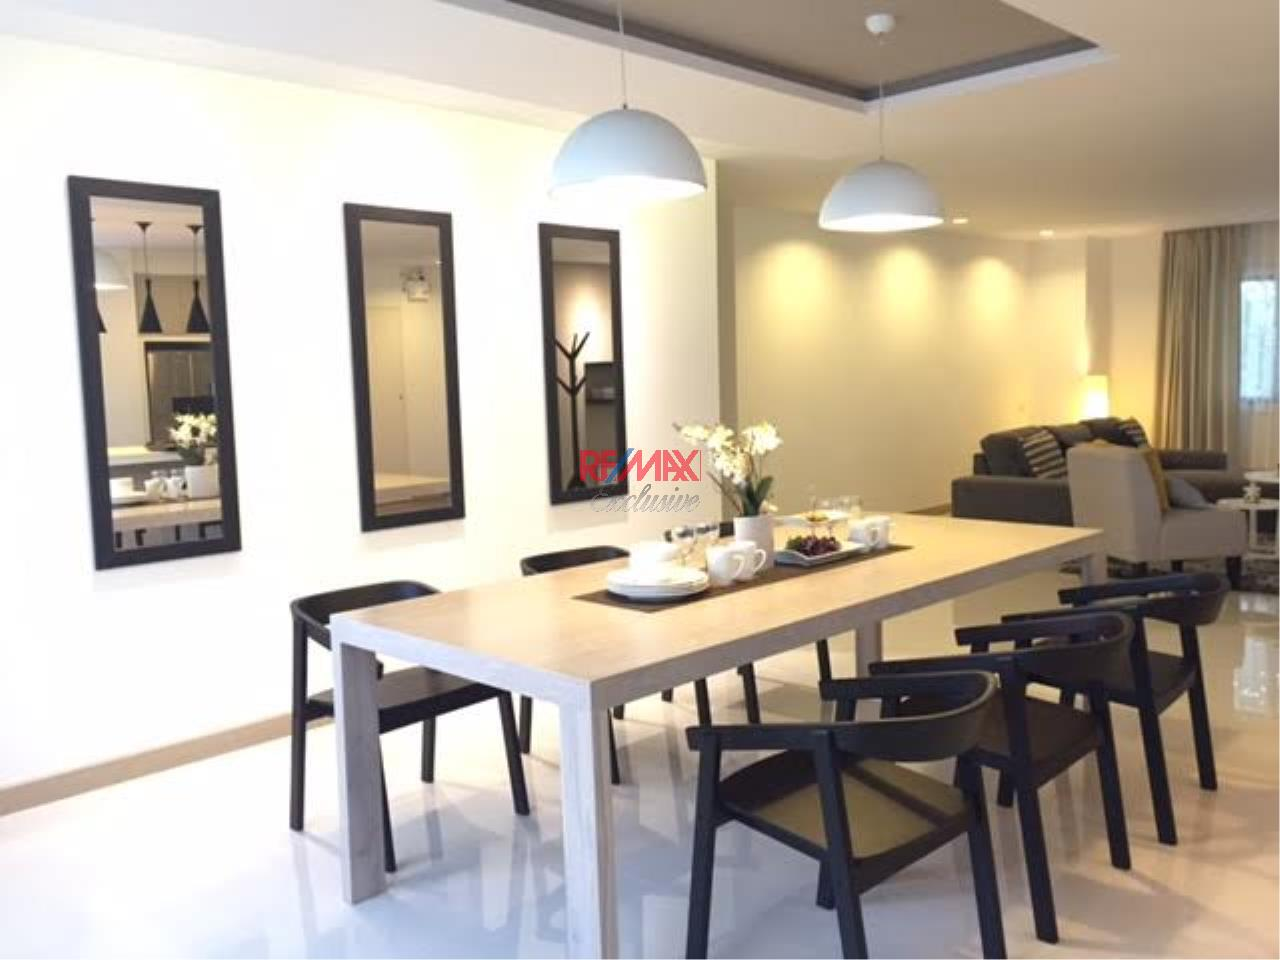 RE/MAX Exclusive Agency's Big Space Apartment in Thonglor for rent 86,000 THB 3